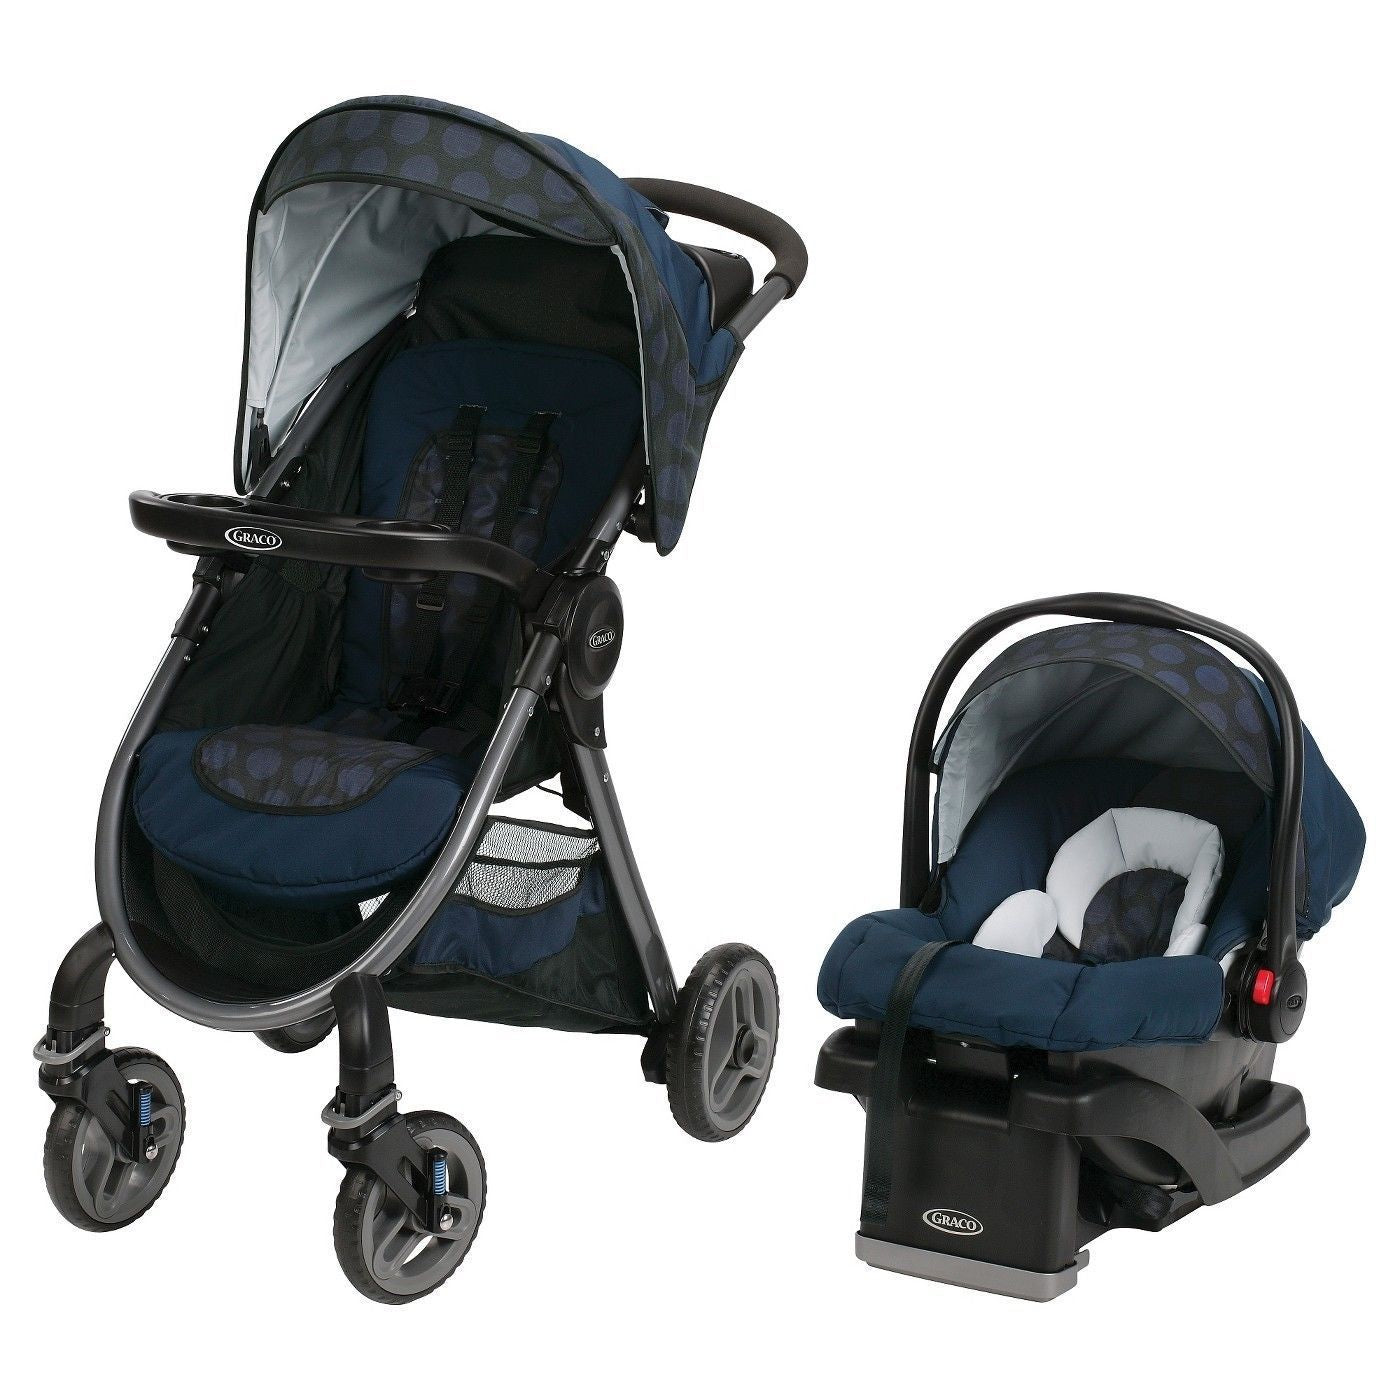 Graco Fast Action 2.0 Travel System in Gilt